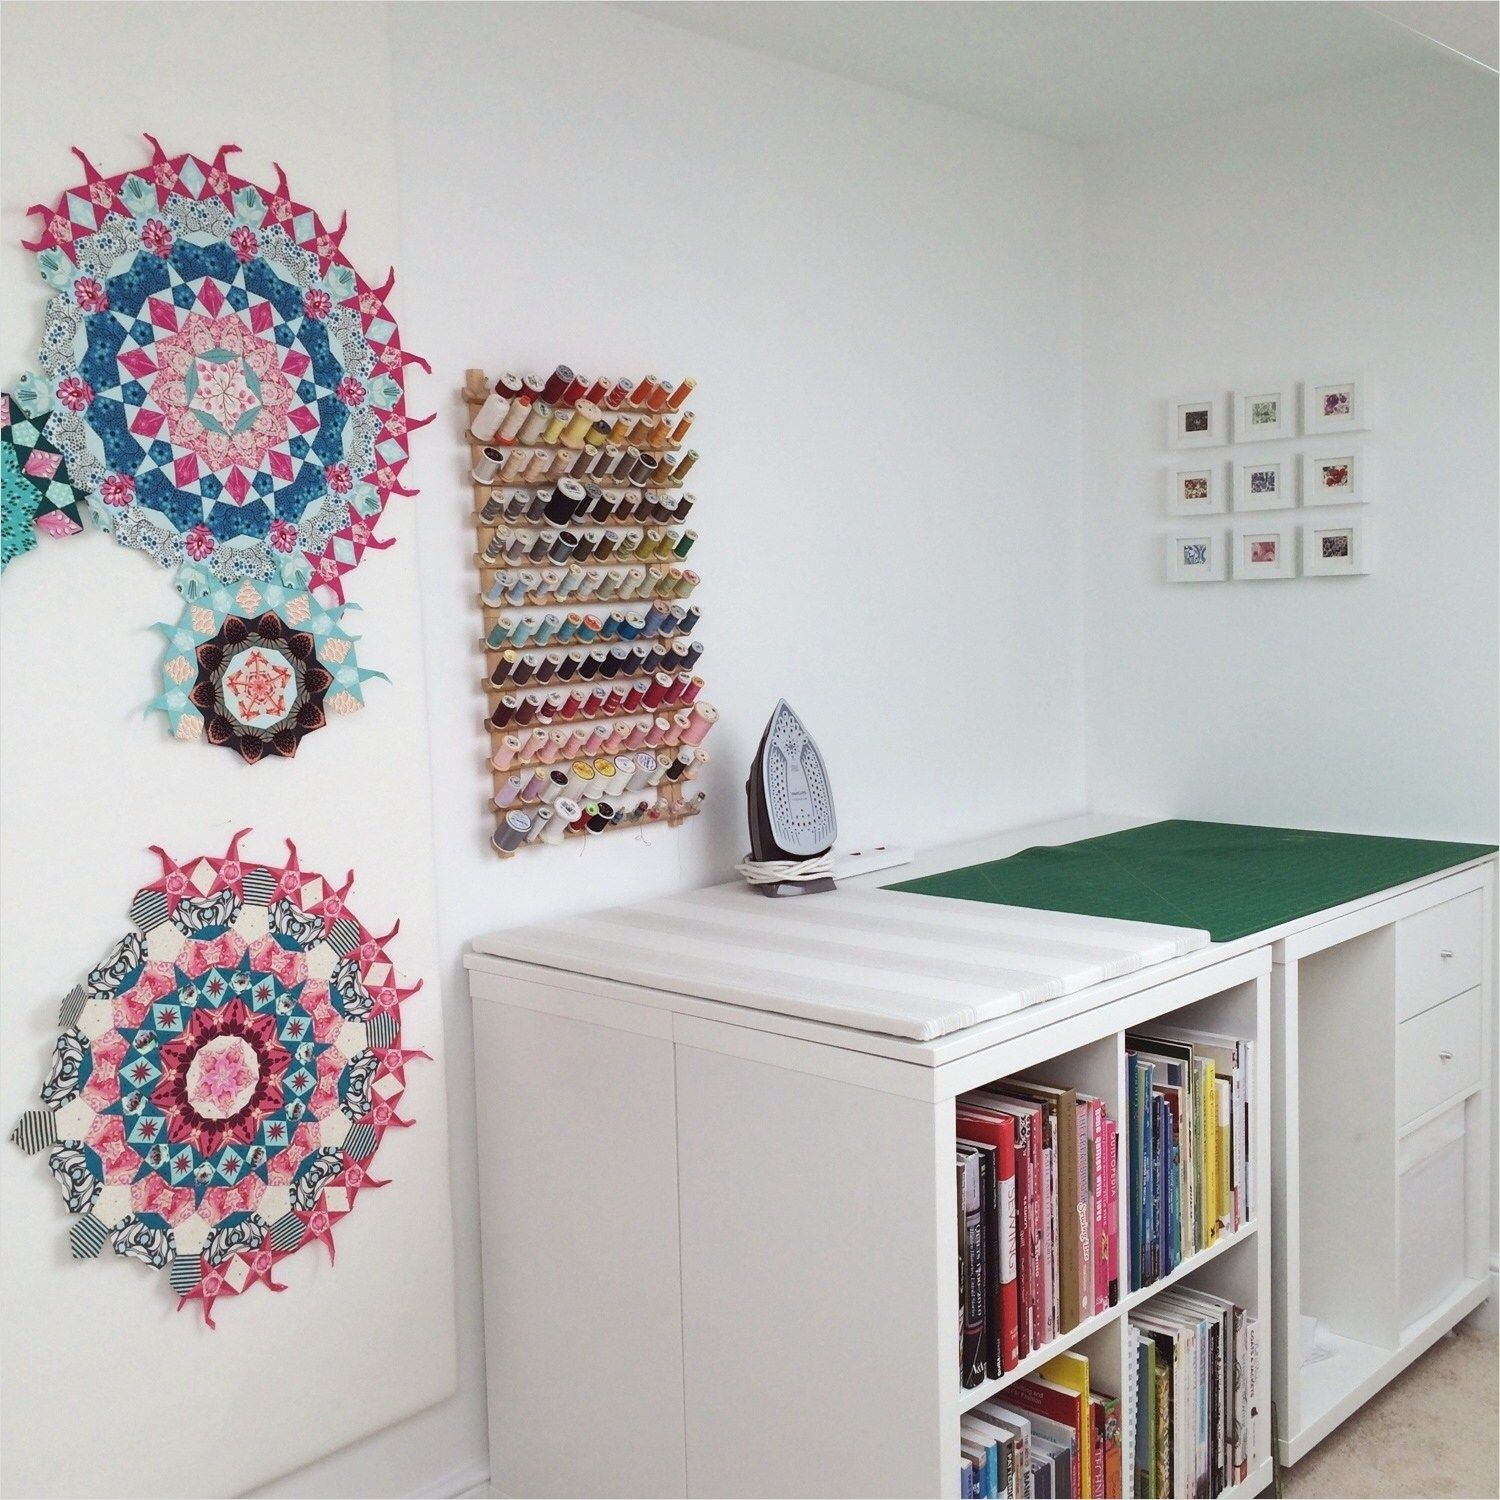 Best 42 Cheap IKEA Sewing Room Ideas  Home Decorating and